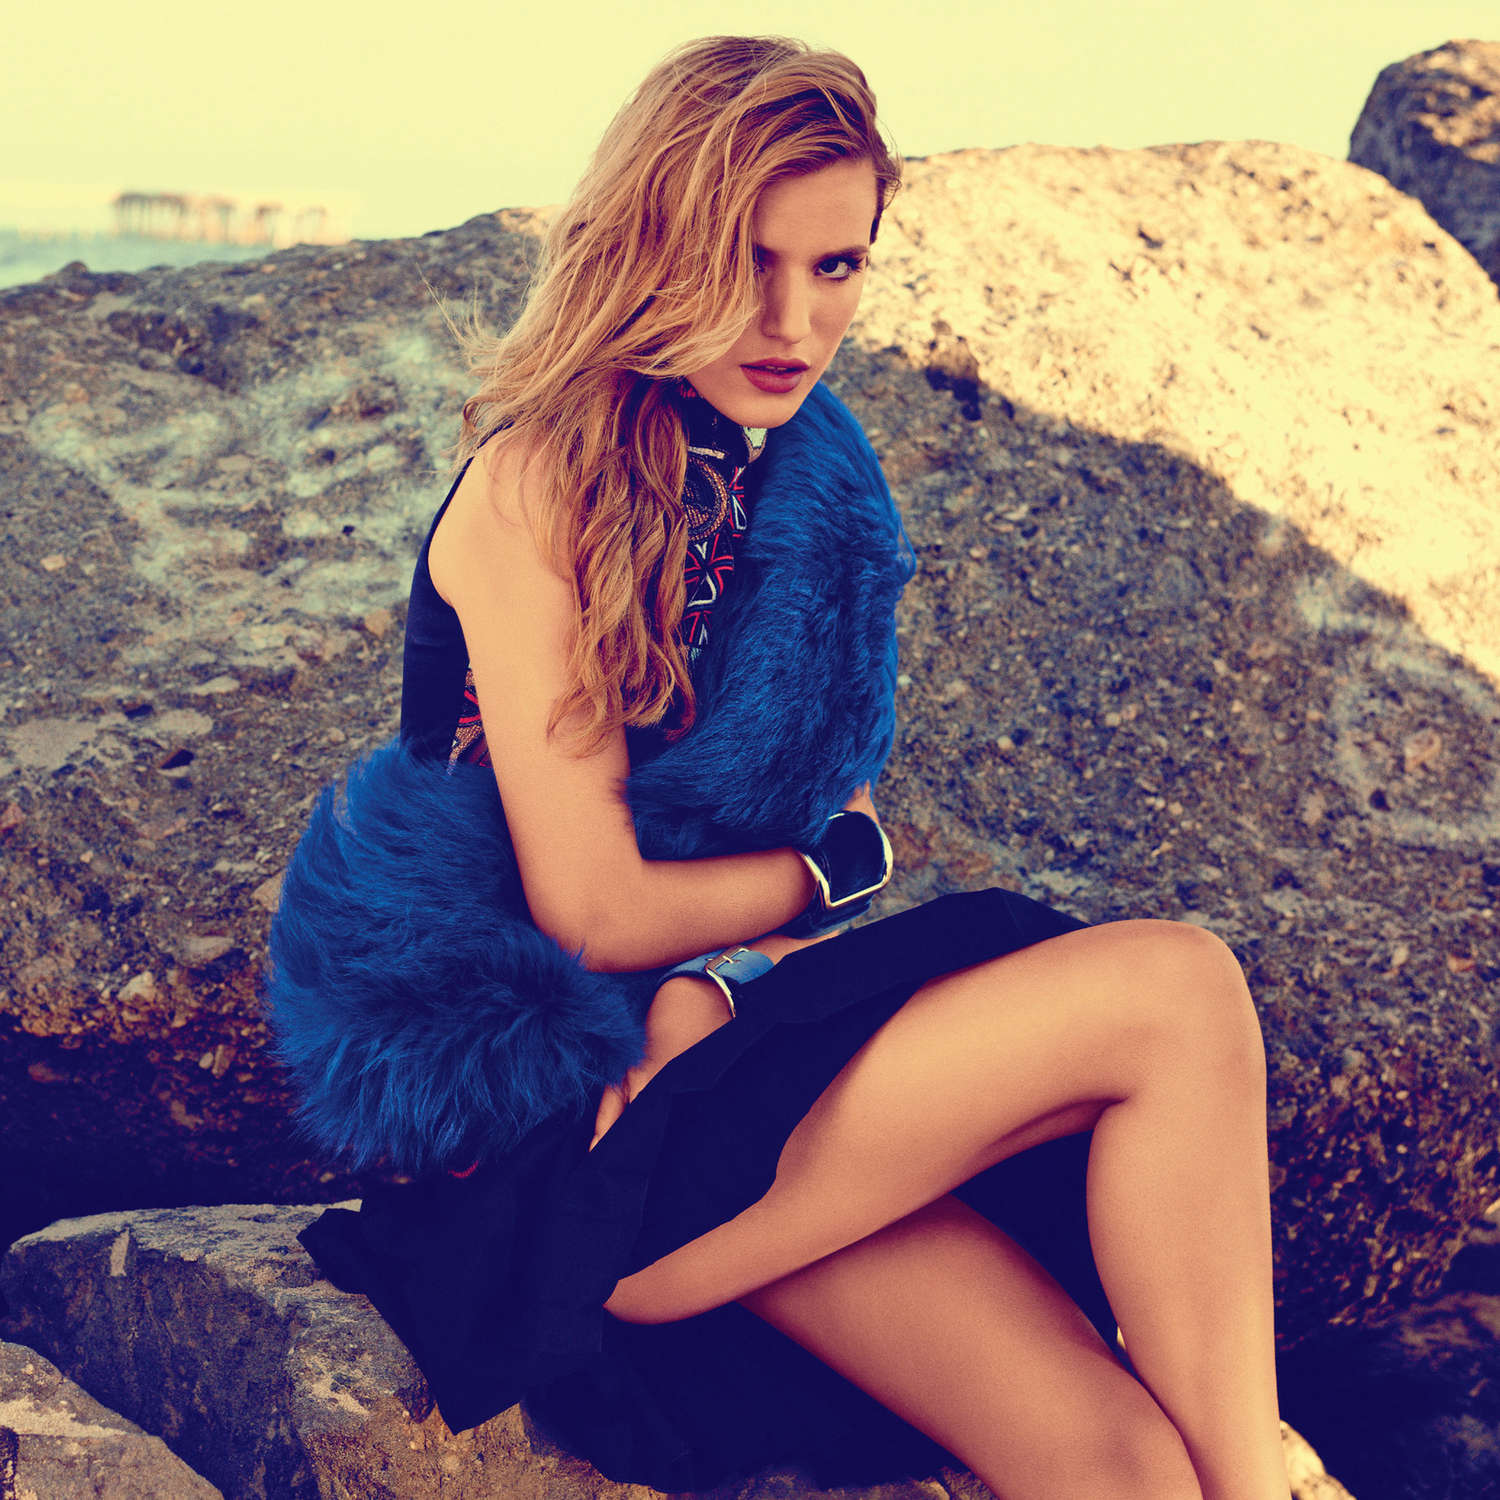 Bella Thorne By Eric Ray Davidson Photoshoot For Instyle